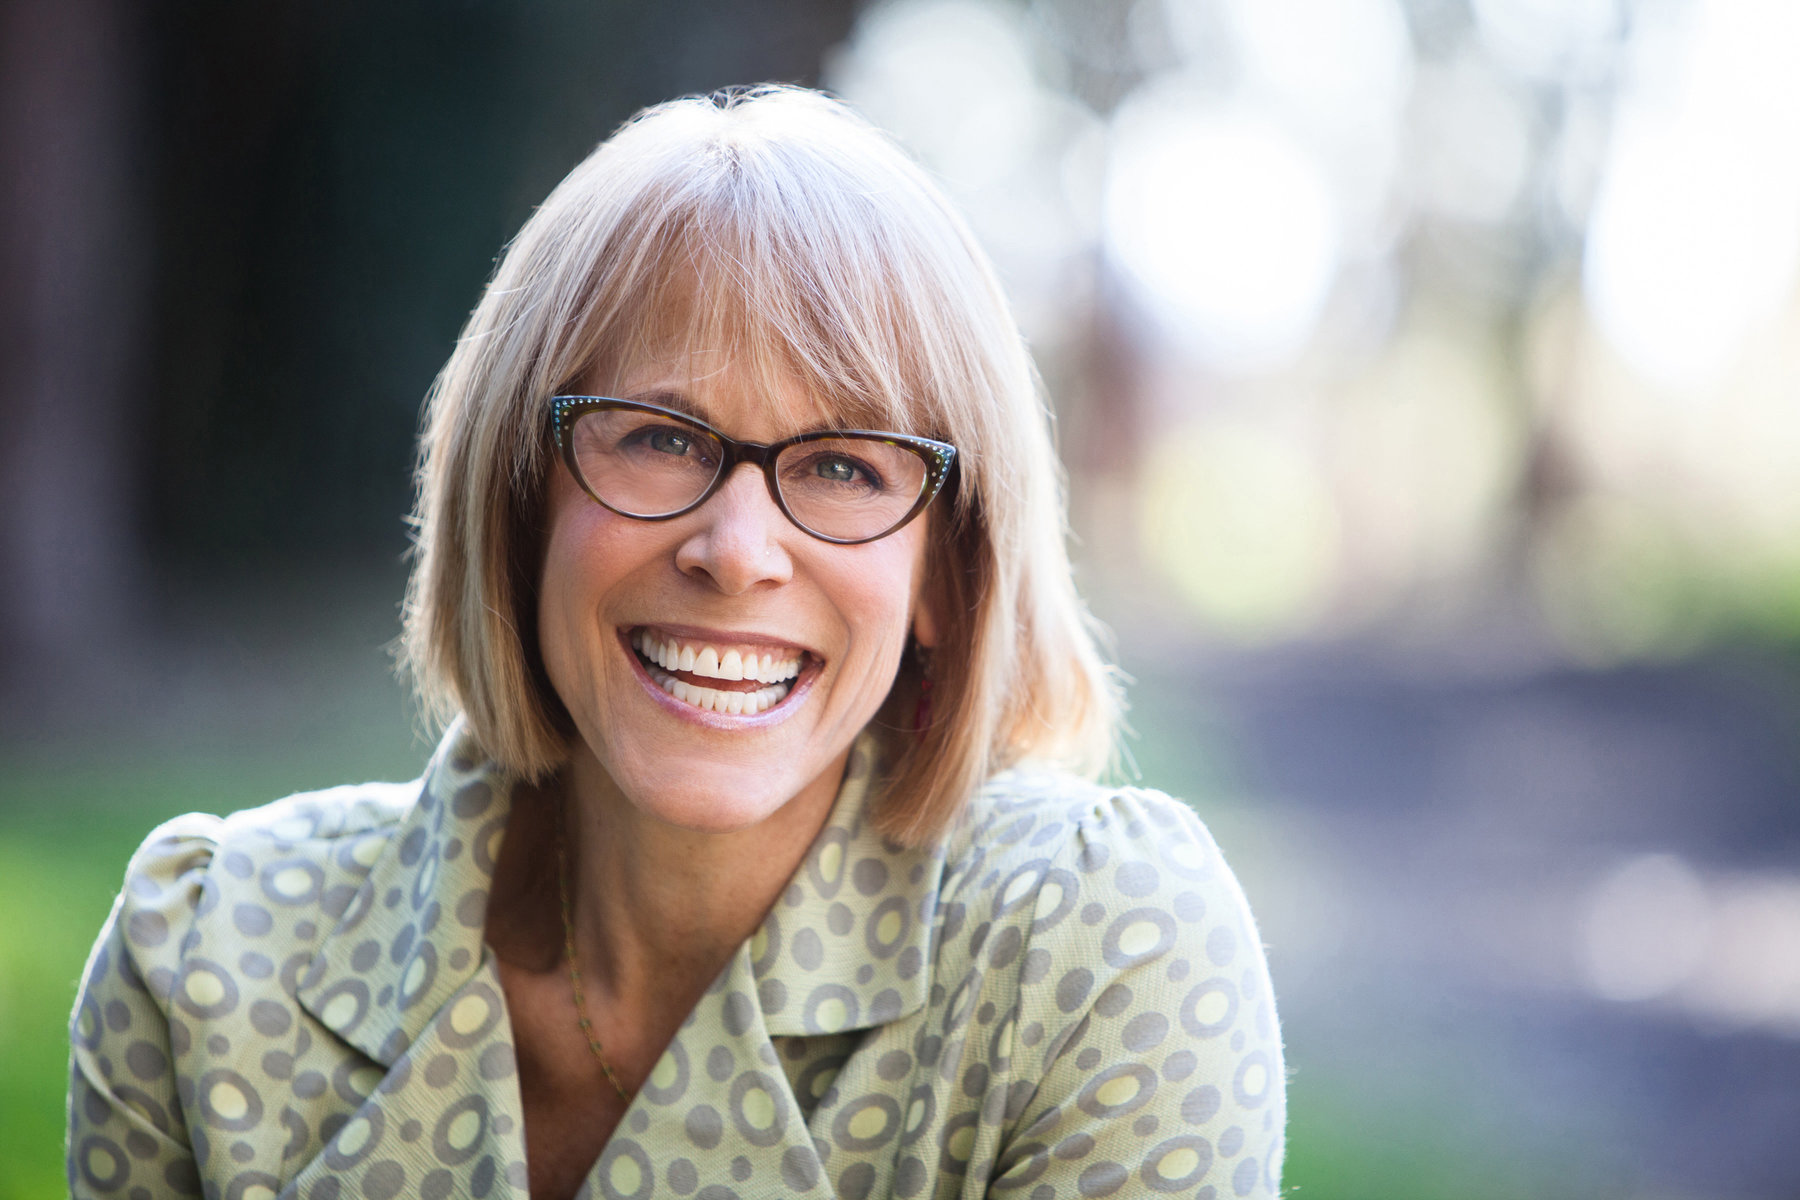 Editorial headshot of Caucasian blonde woman wearing glasses and smiling by commercial photographer Nancy Rothstein